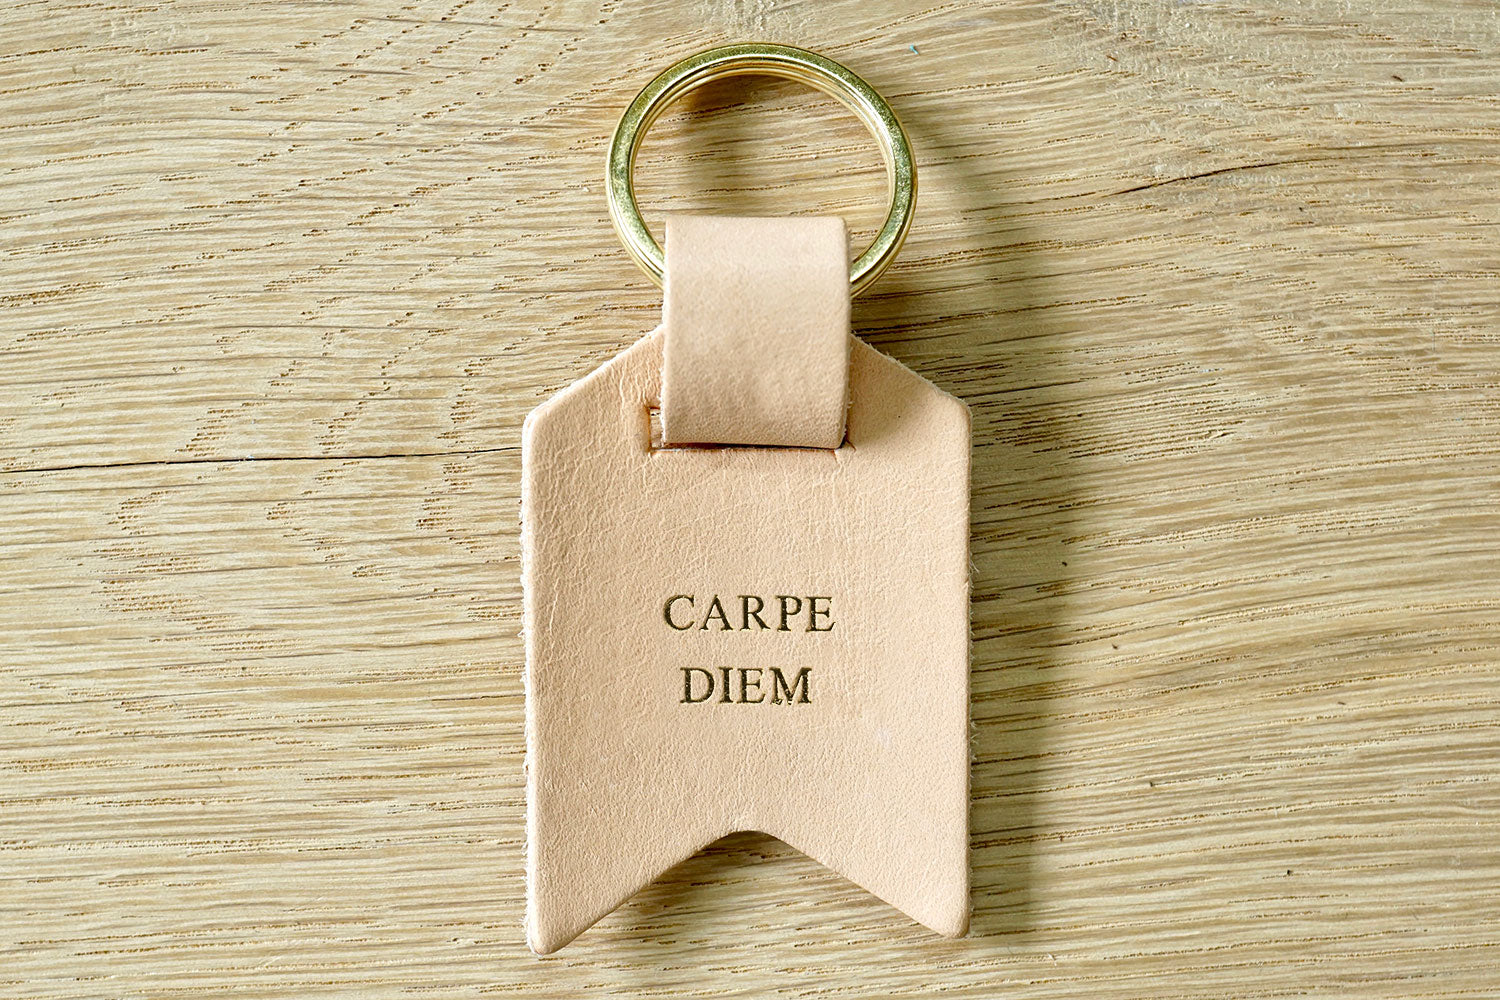 Peronalised keyrings from Bookshell Bindery in natural pale pink leather embossed with gold foil, Carpe Diem